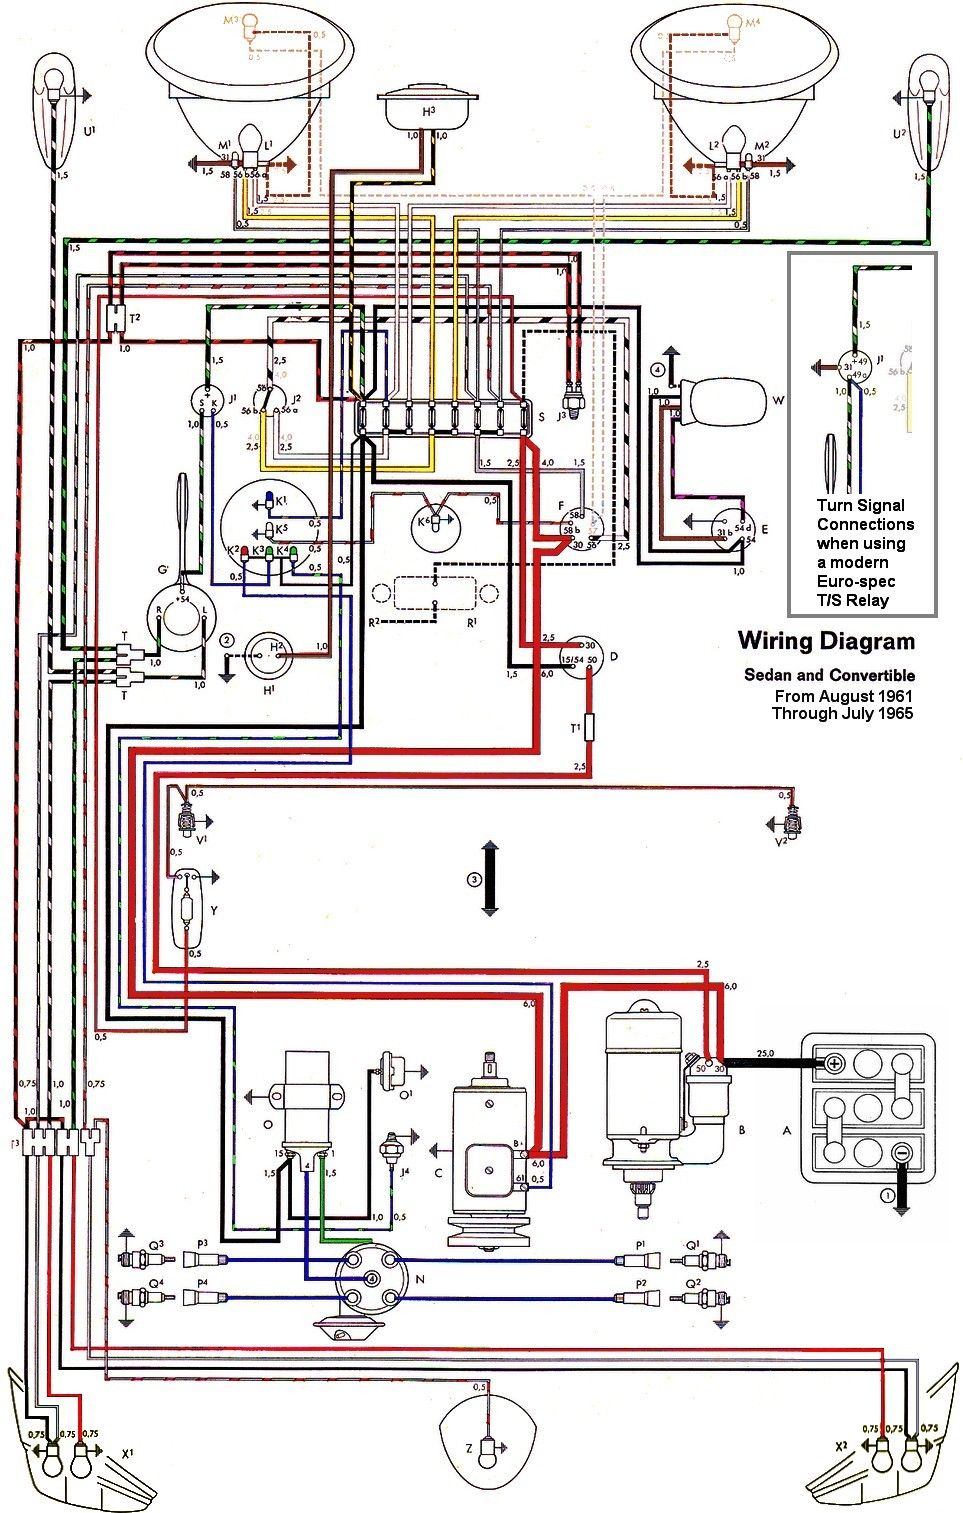 vw thing wiring diy wiring diagrams u2022 rh aviomar co 1966 VW Beetle Wiring Diagram 1967 VW Wiring Diagram Radio